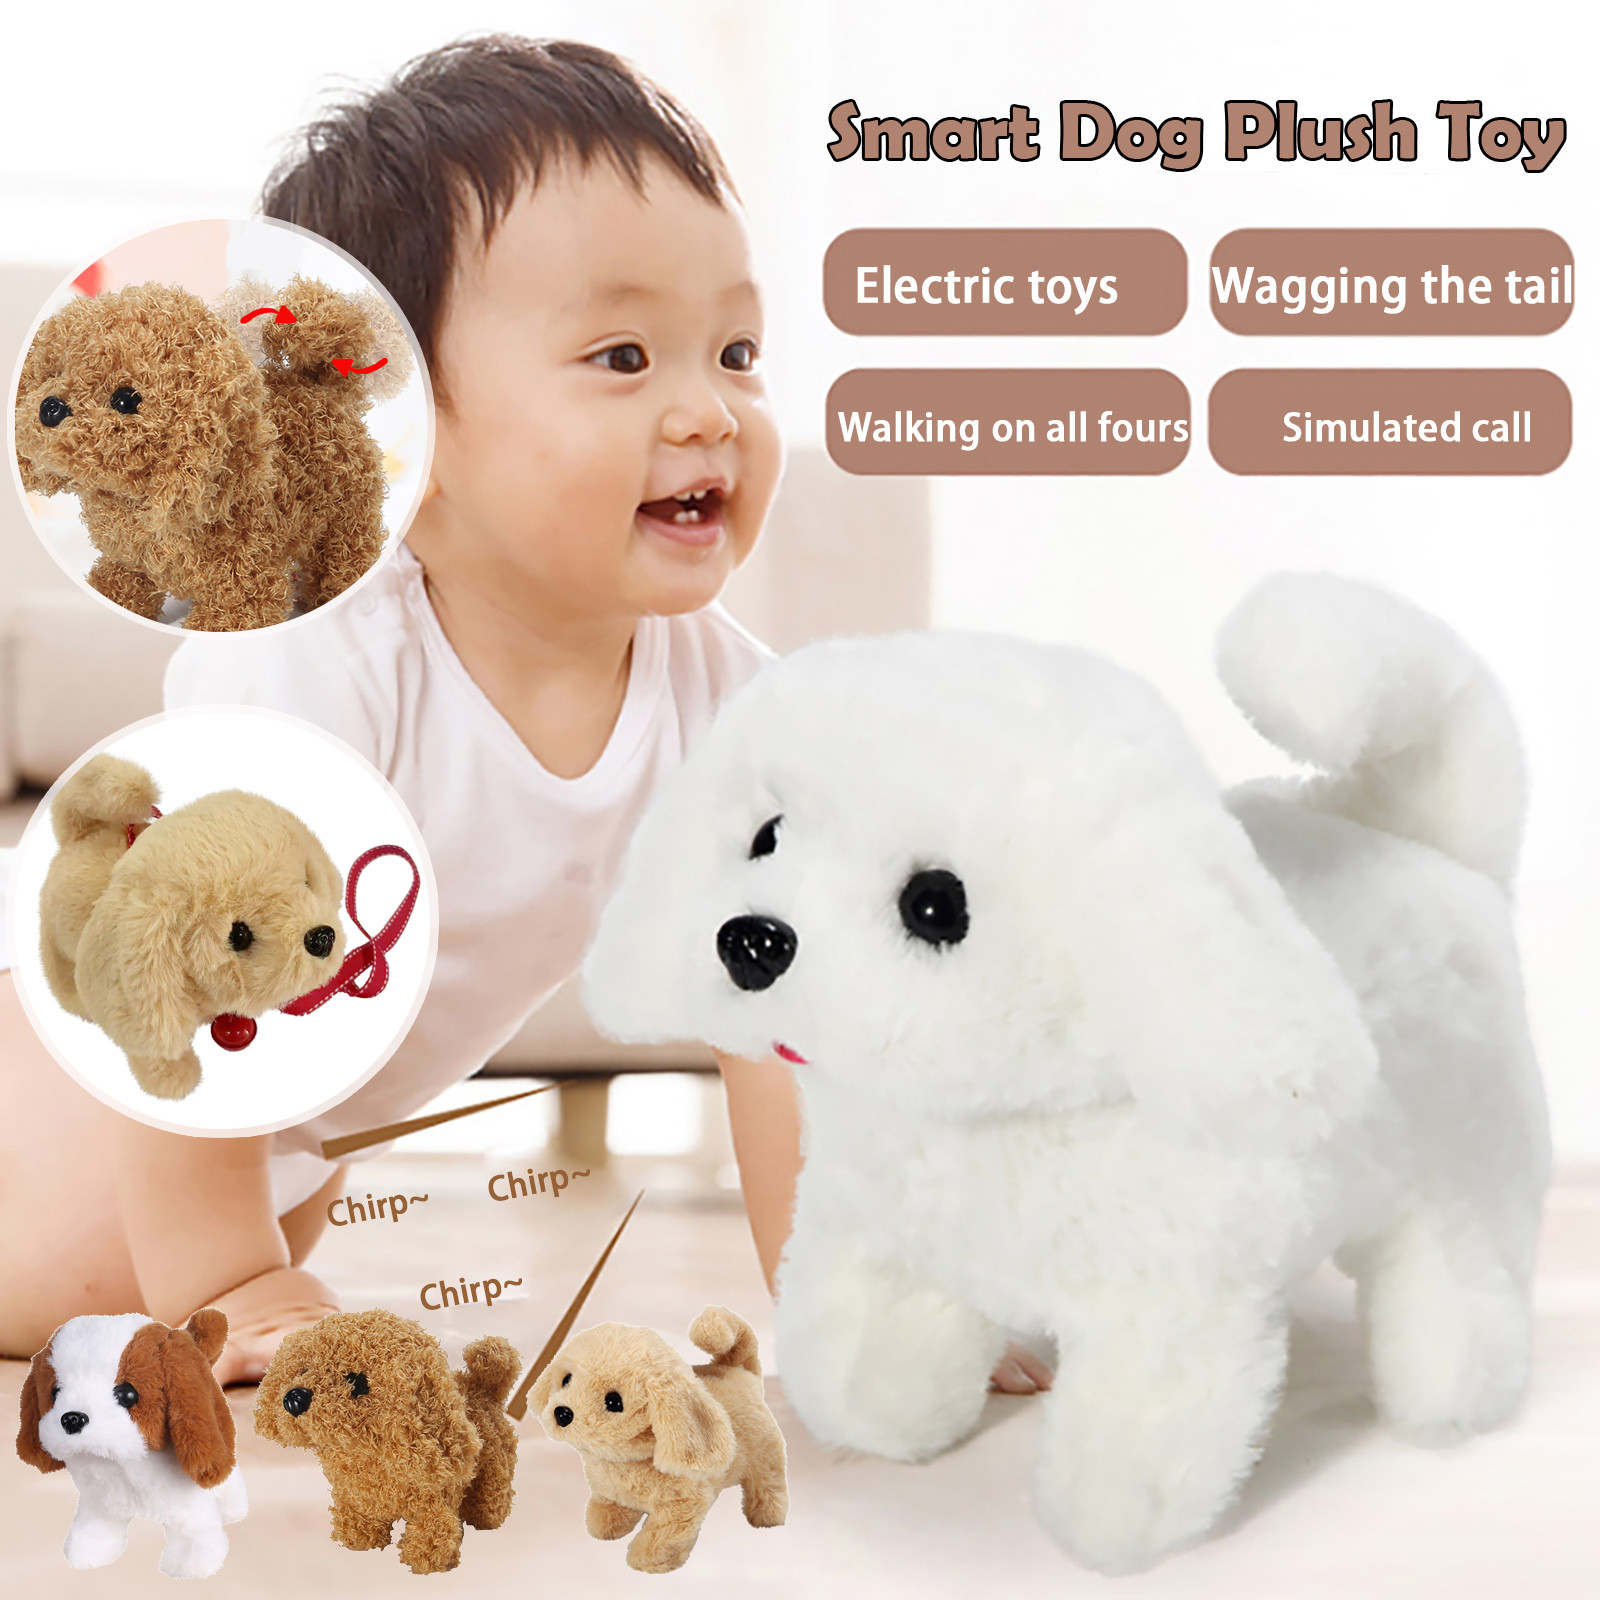 Electric Plush Pets Doll Toy Cute Simulation Puppy Plush Toys Will Be Called Walking Smart Robot Dog interactive toys For Kids